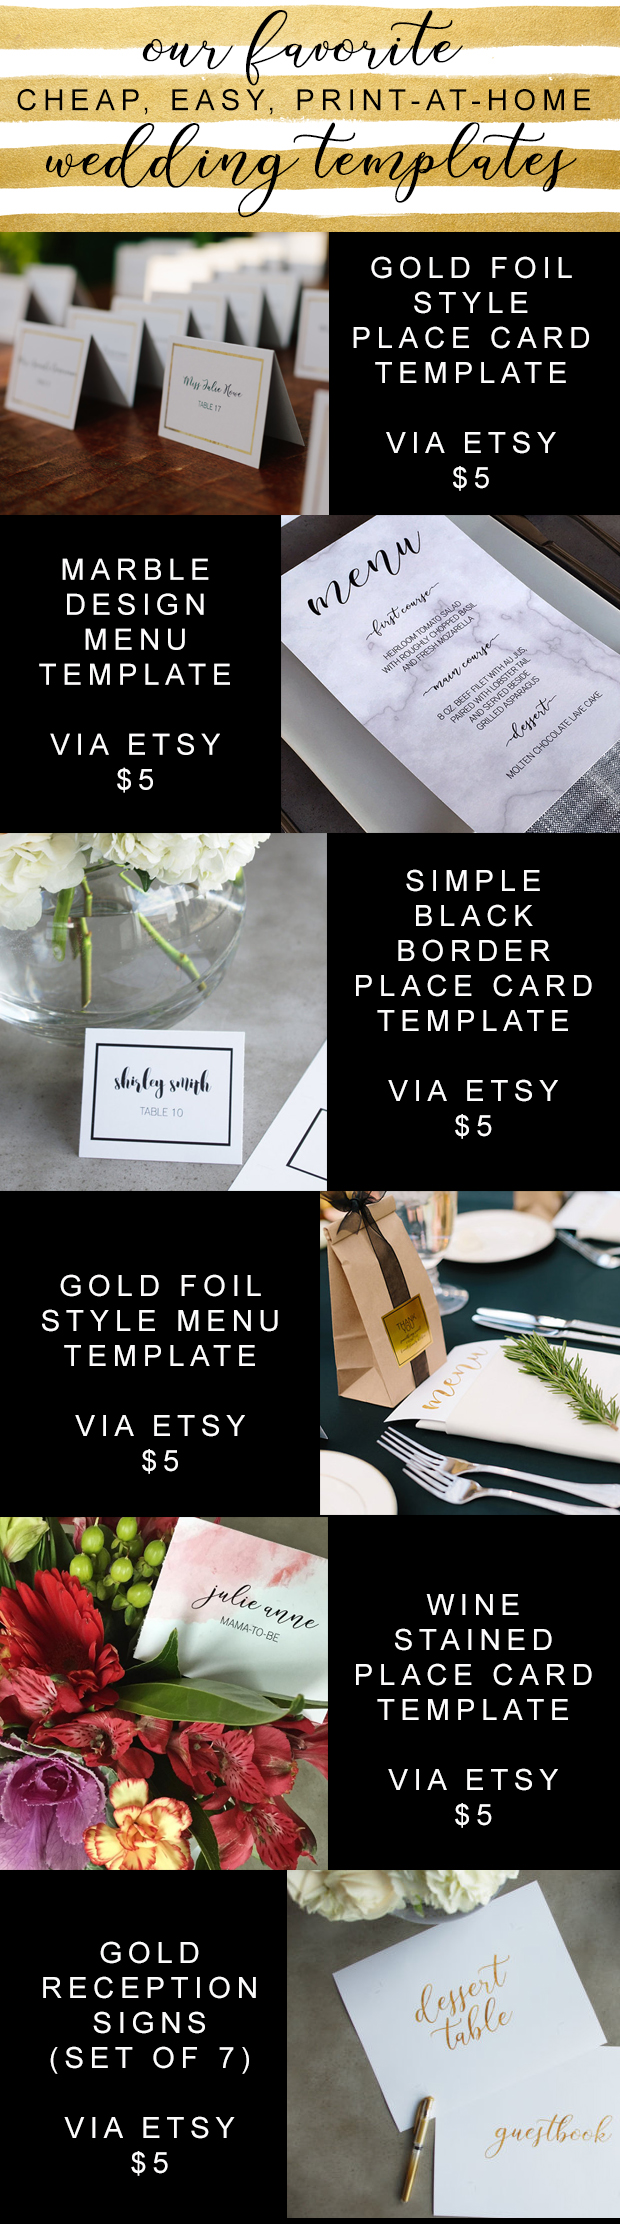 best-wedding-templates